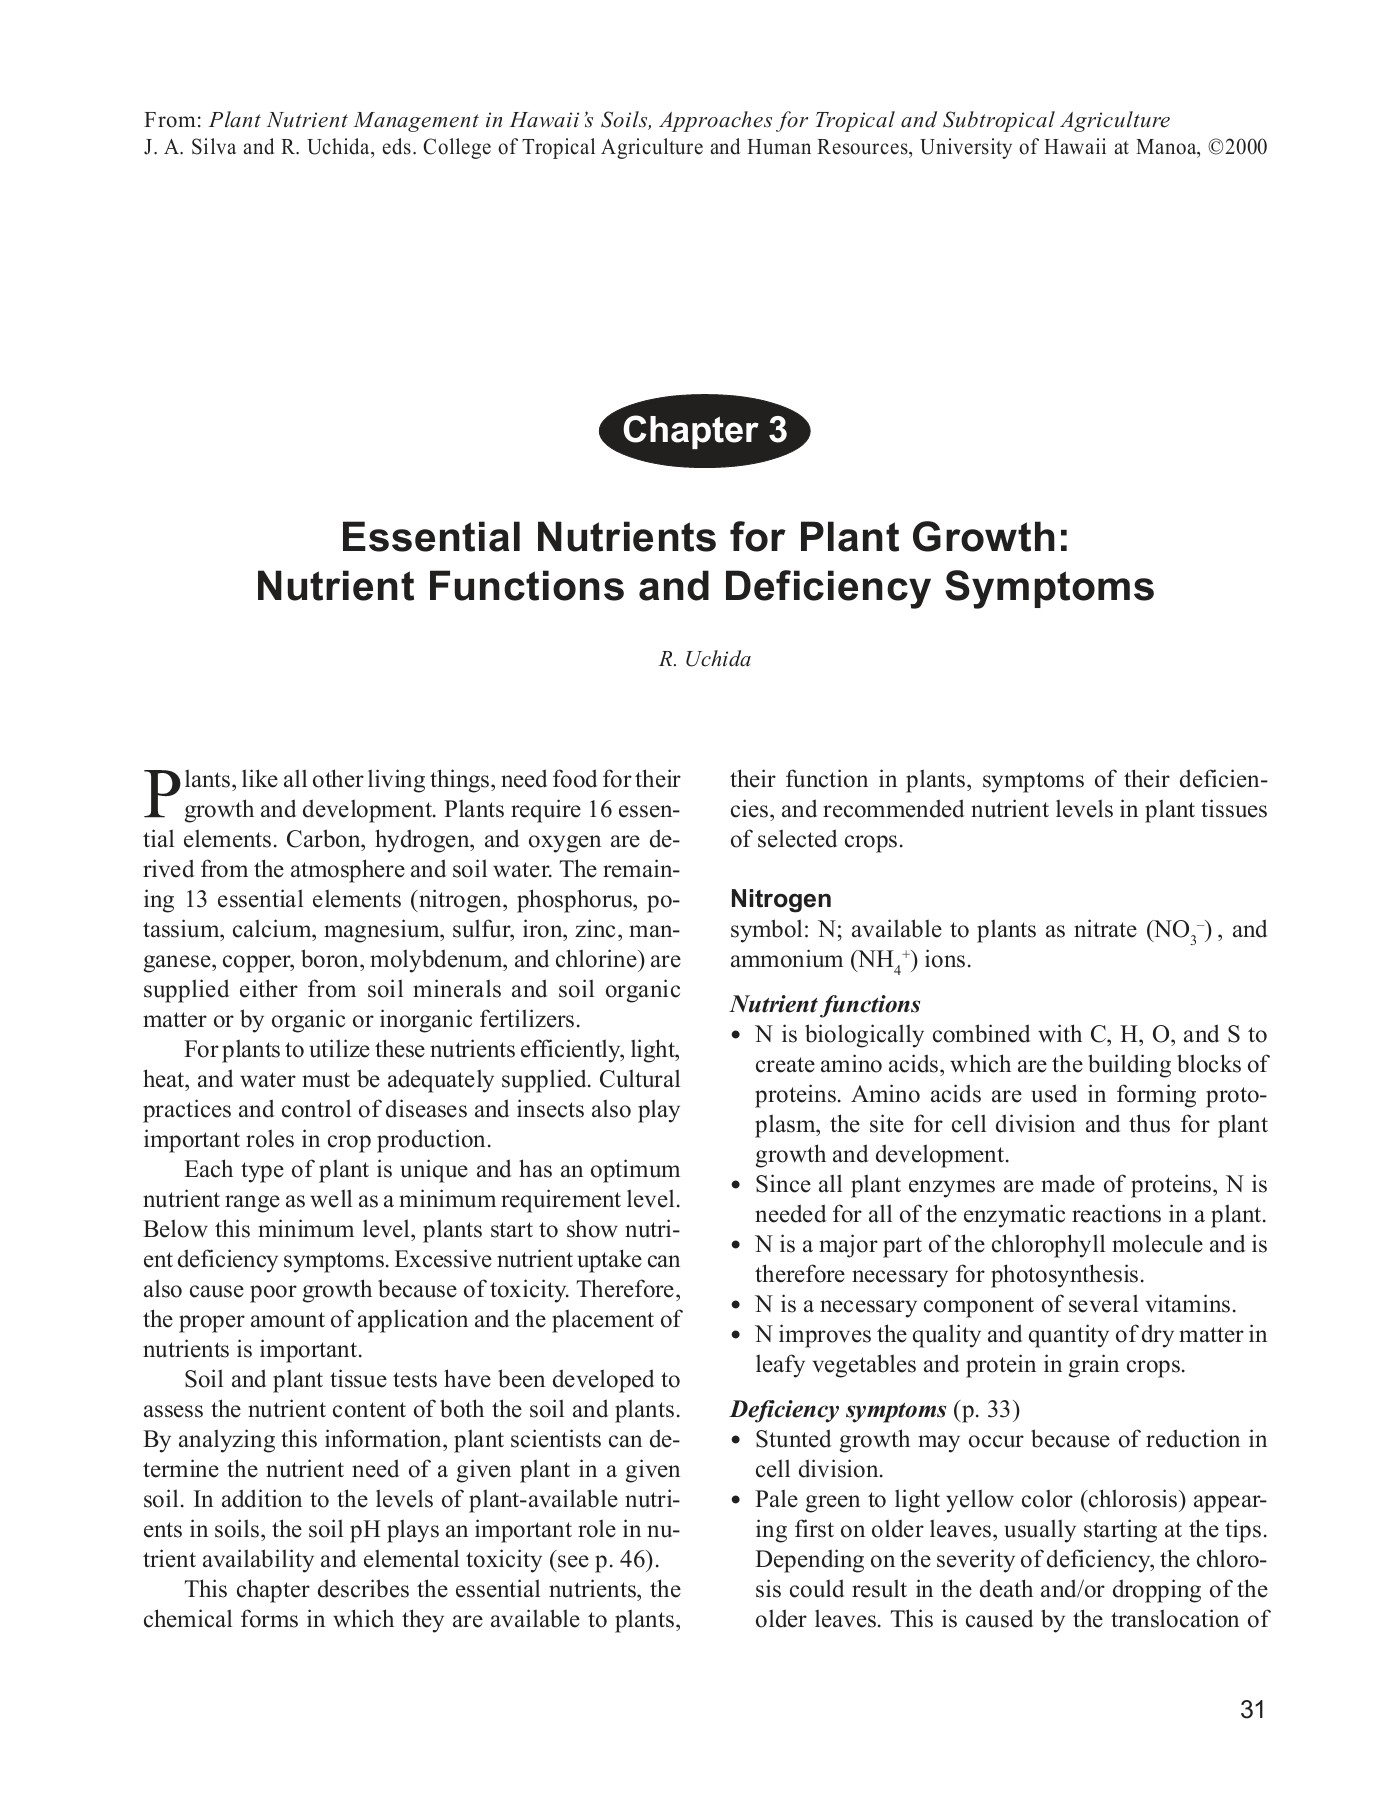 Essential Nutrients for Plant Growth: Nutrient Functions     Pages 1